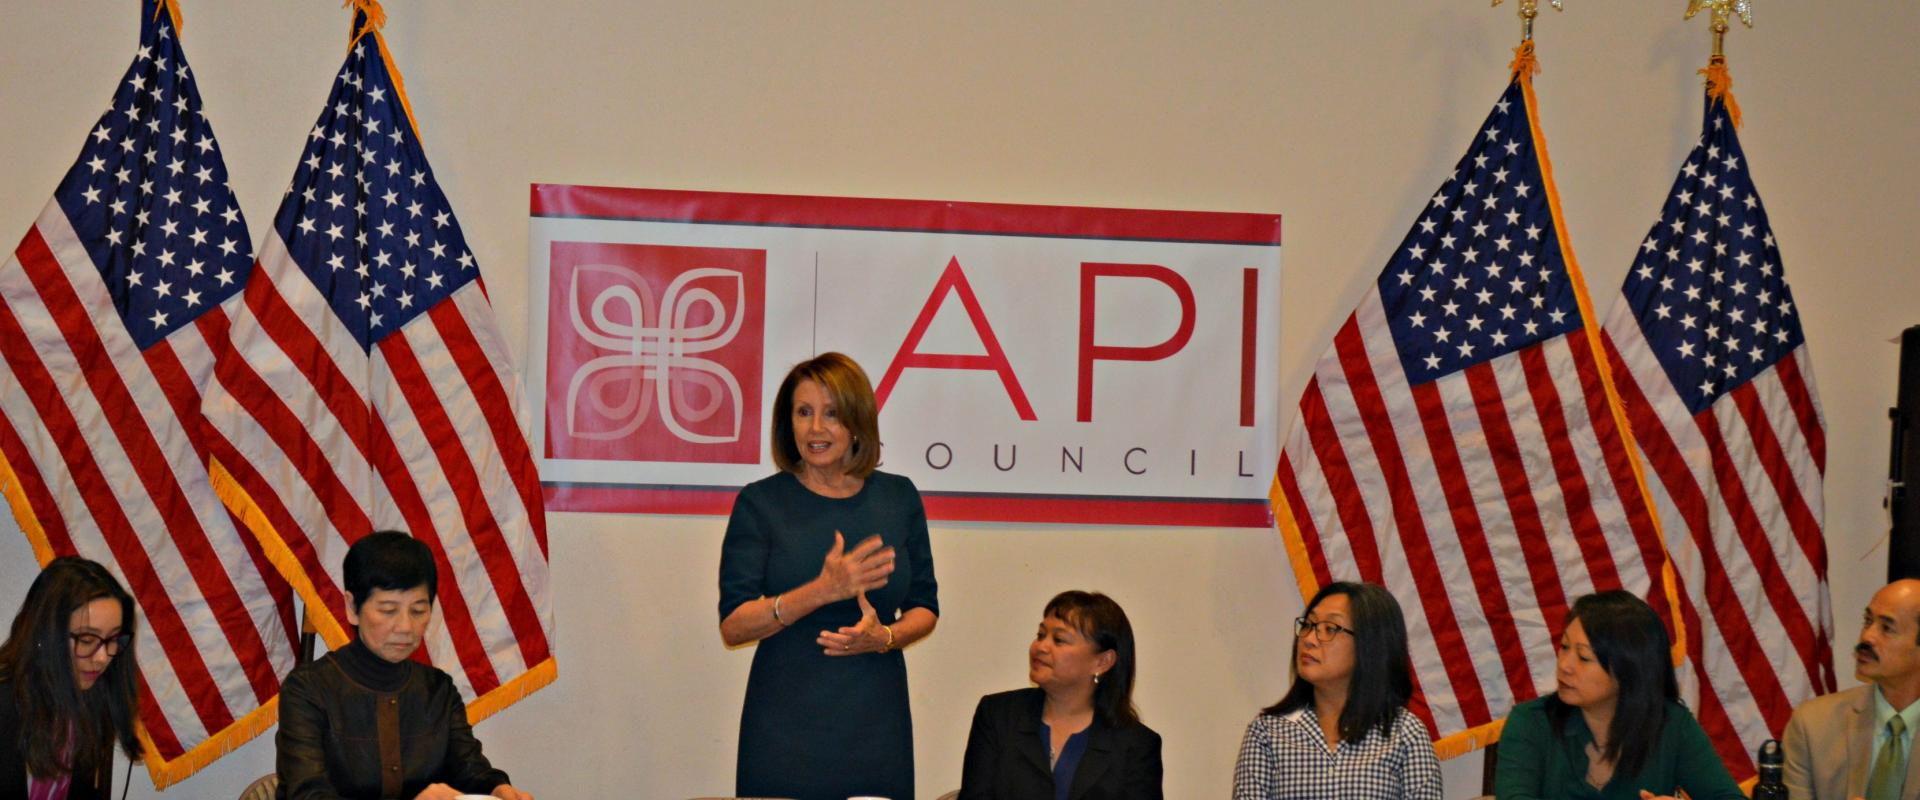 Congresswoman Pelosi holds a roundtable discussion with the San Francisco Asian Pacific Islander Council to hear from leaders in the Asian American Pacific Islander Community.